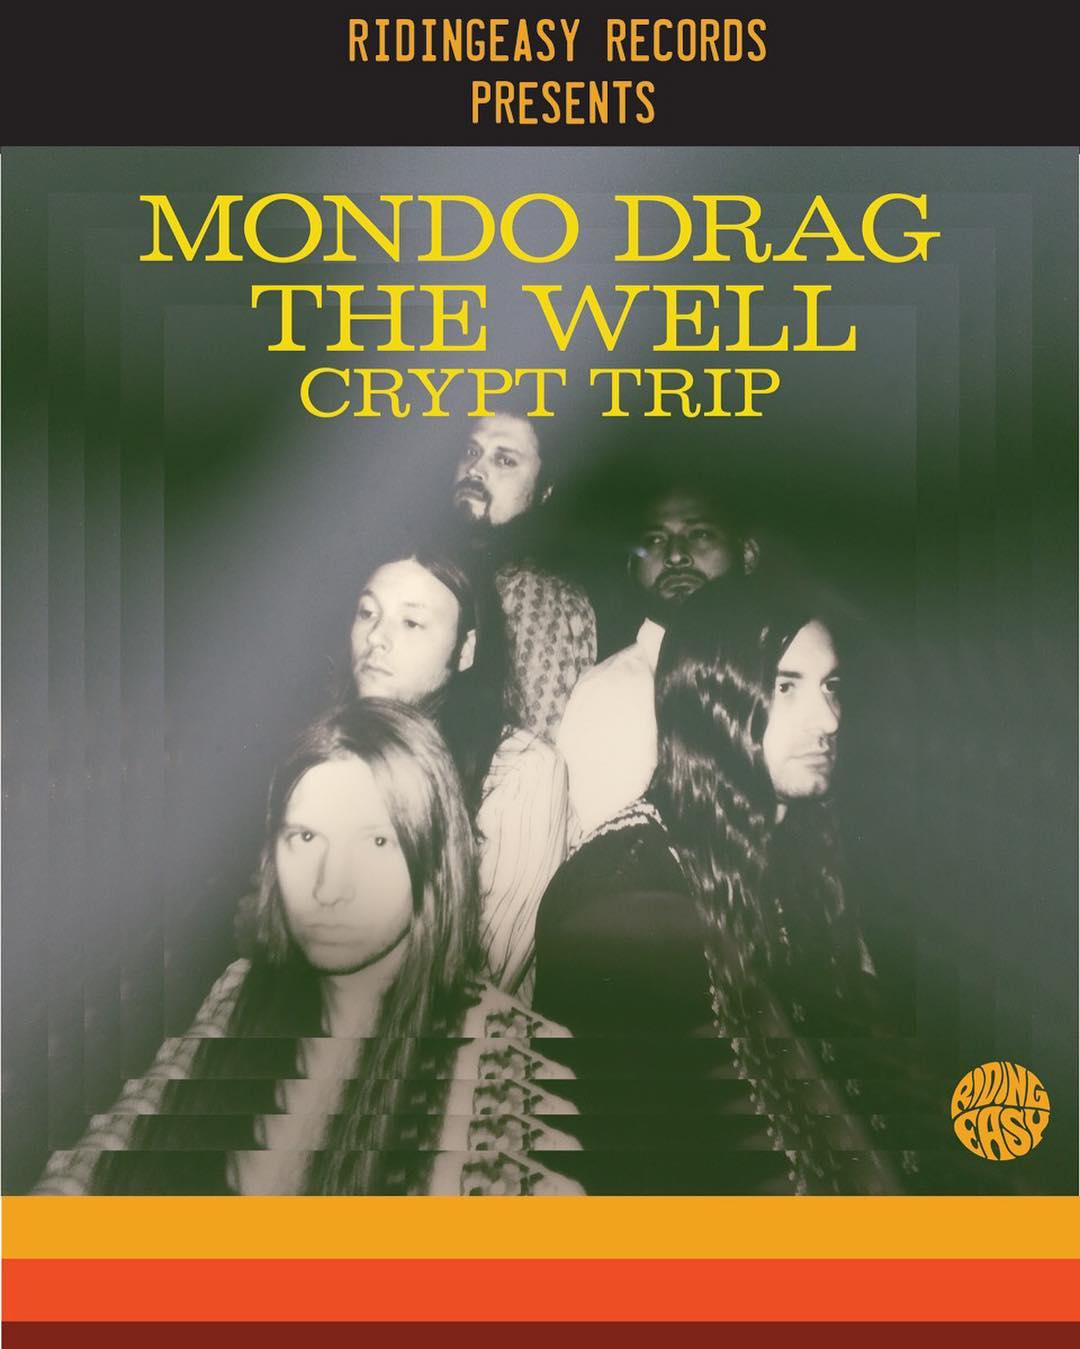 mondo drag the well tour